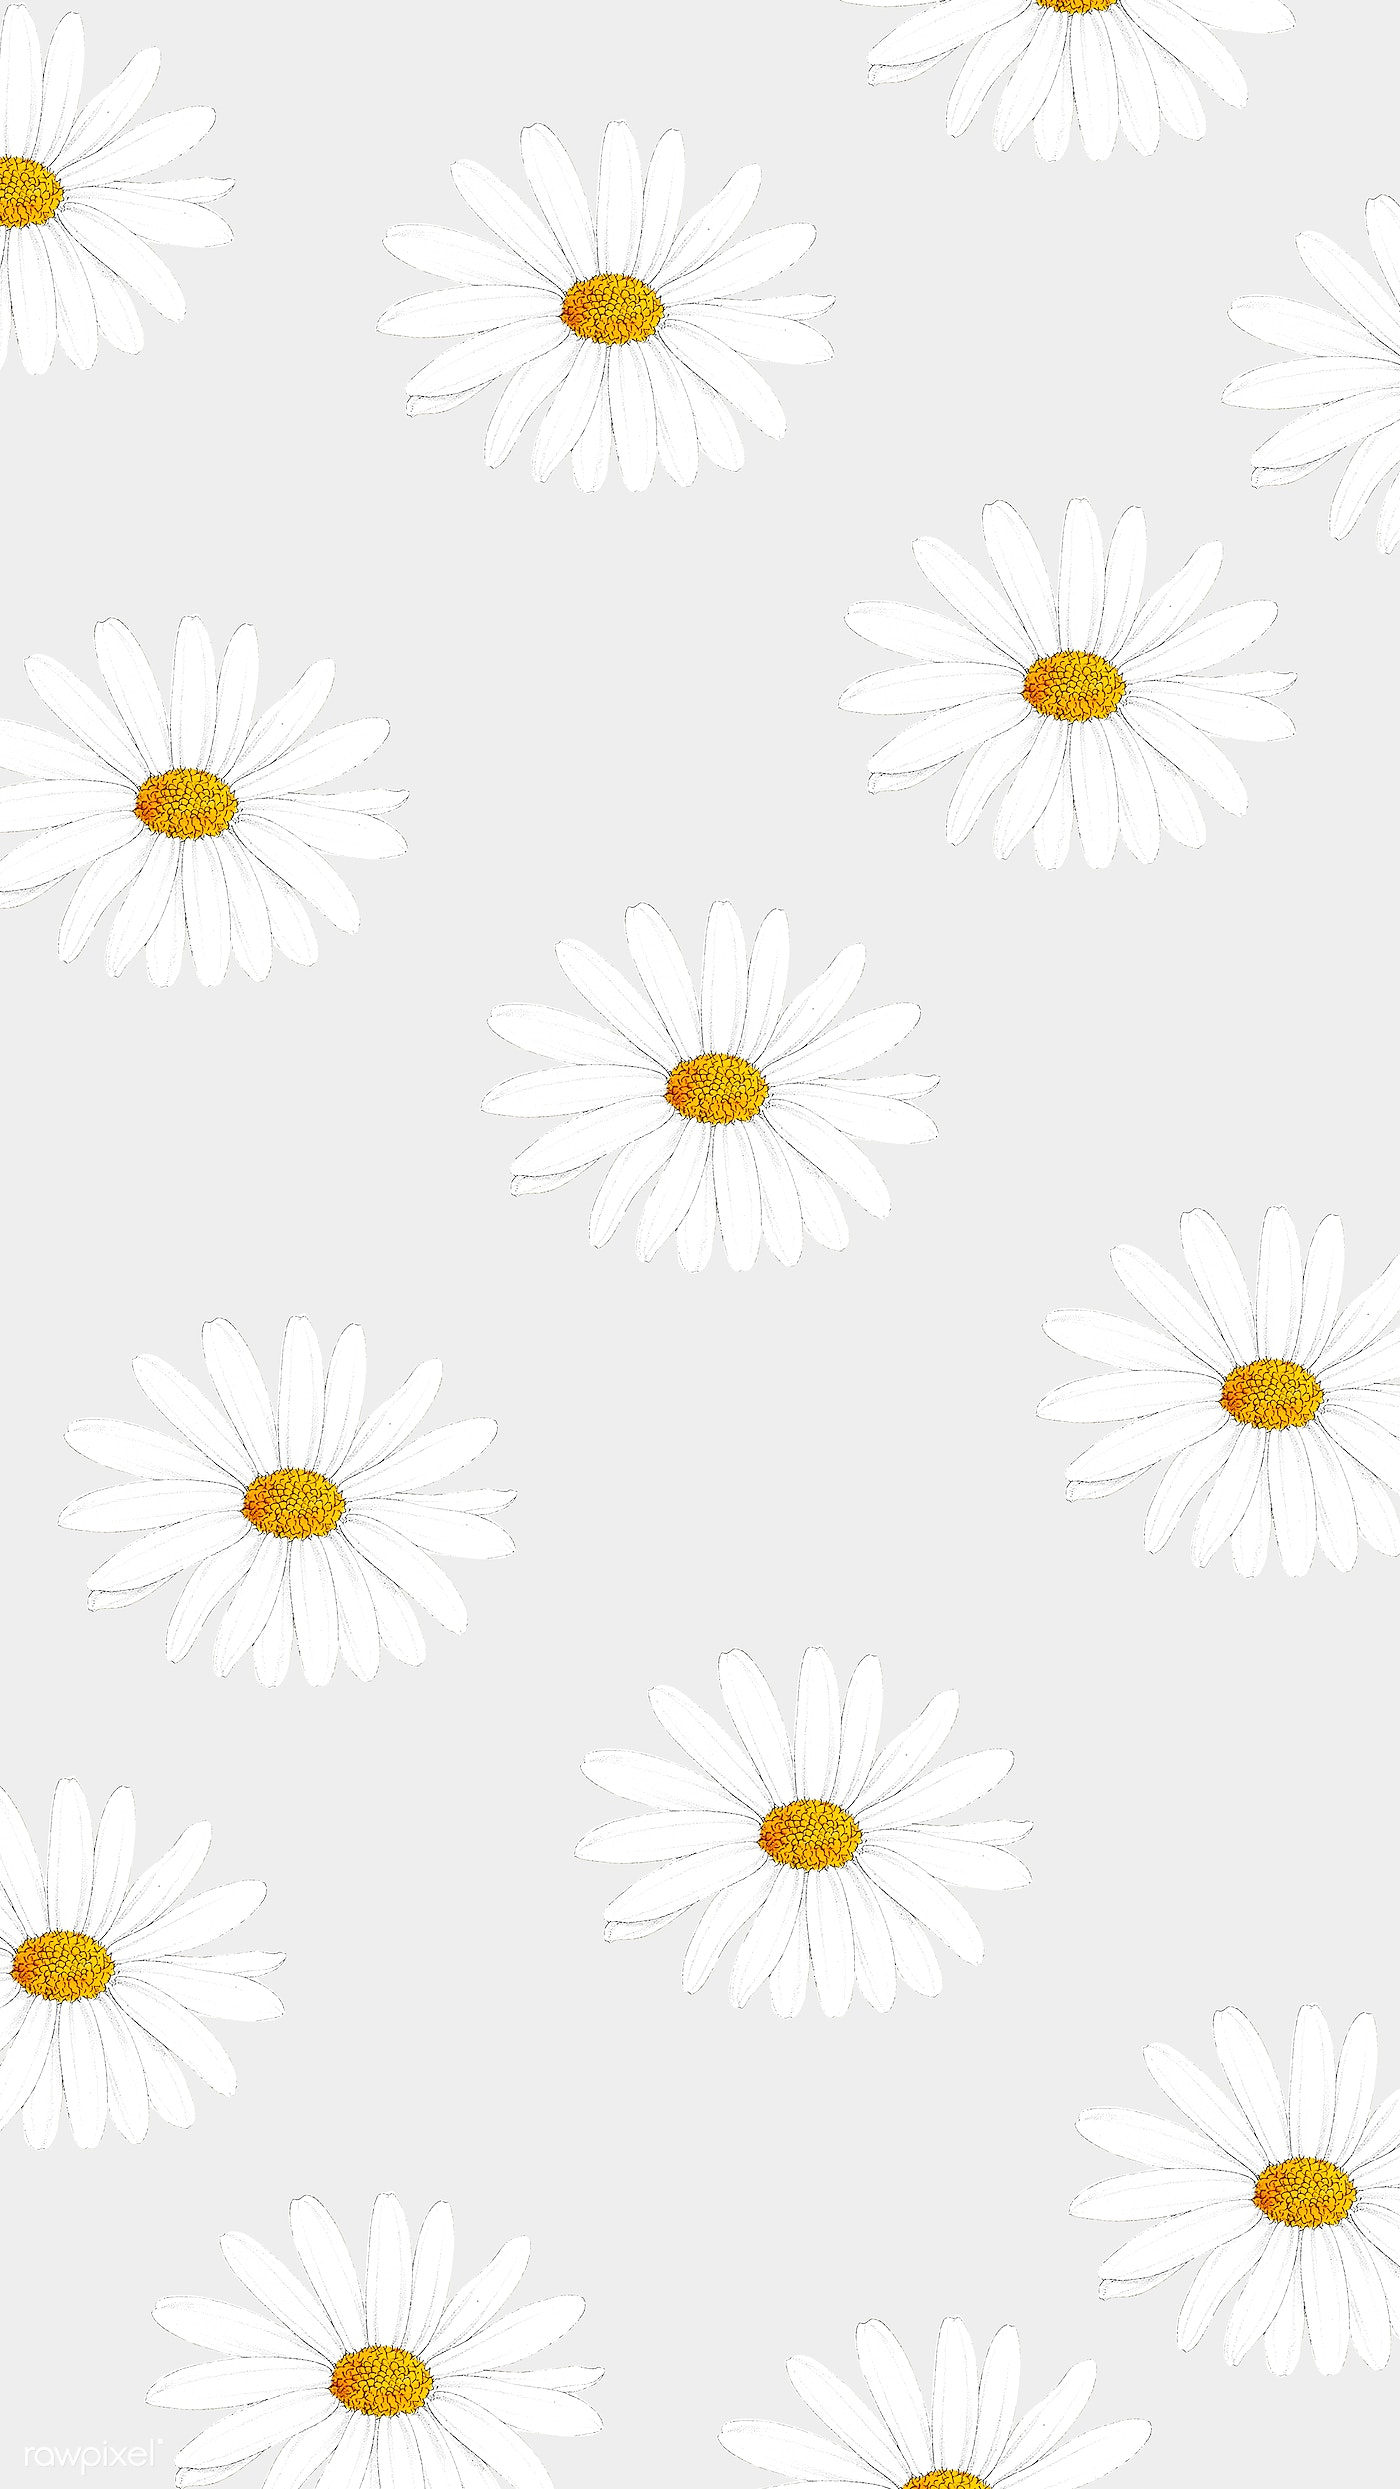 Floral Patterned Phone Background Royalty Free Illustration